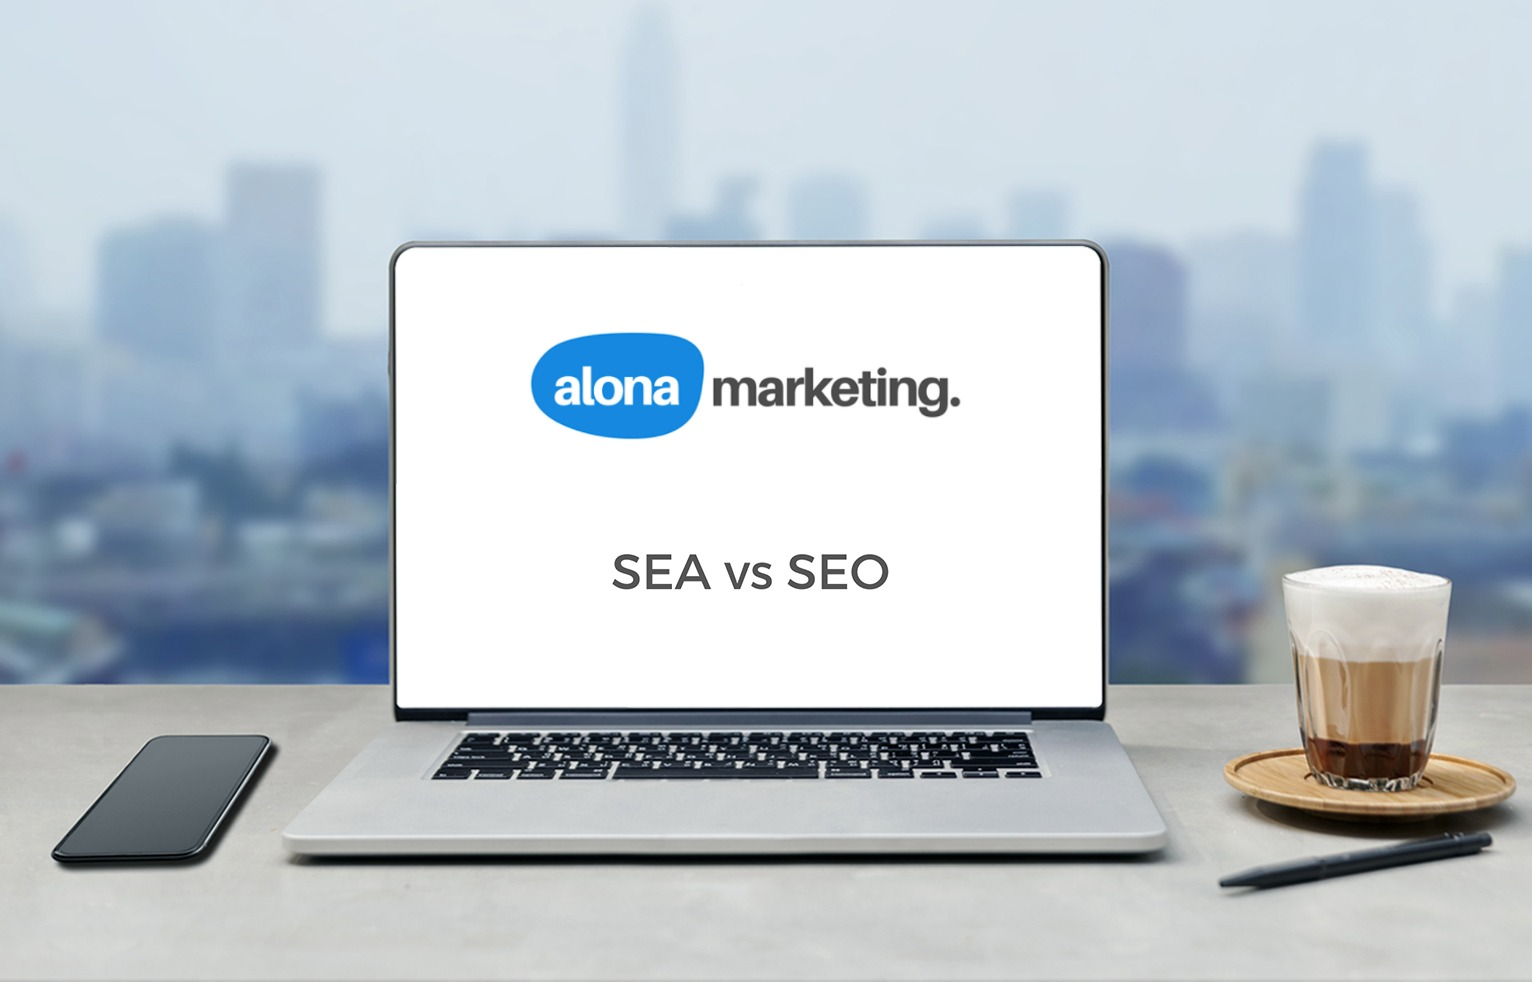 SEA vs SEO